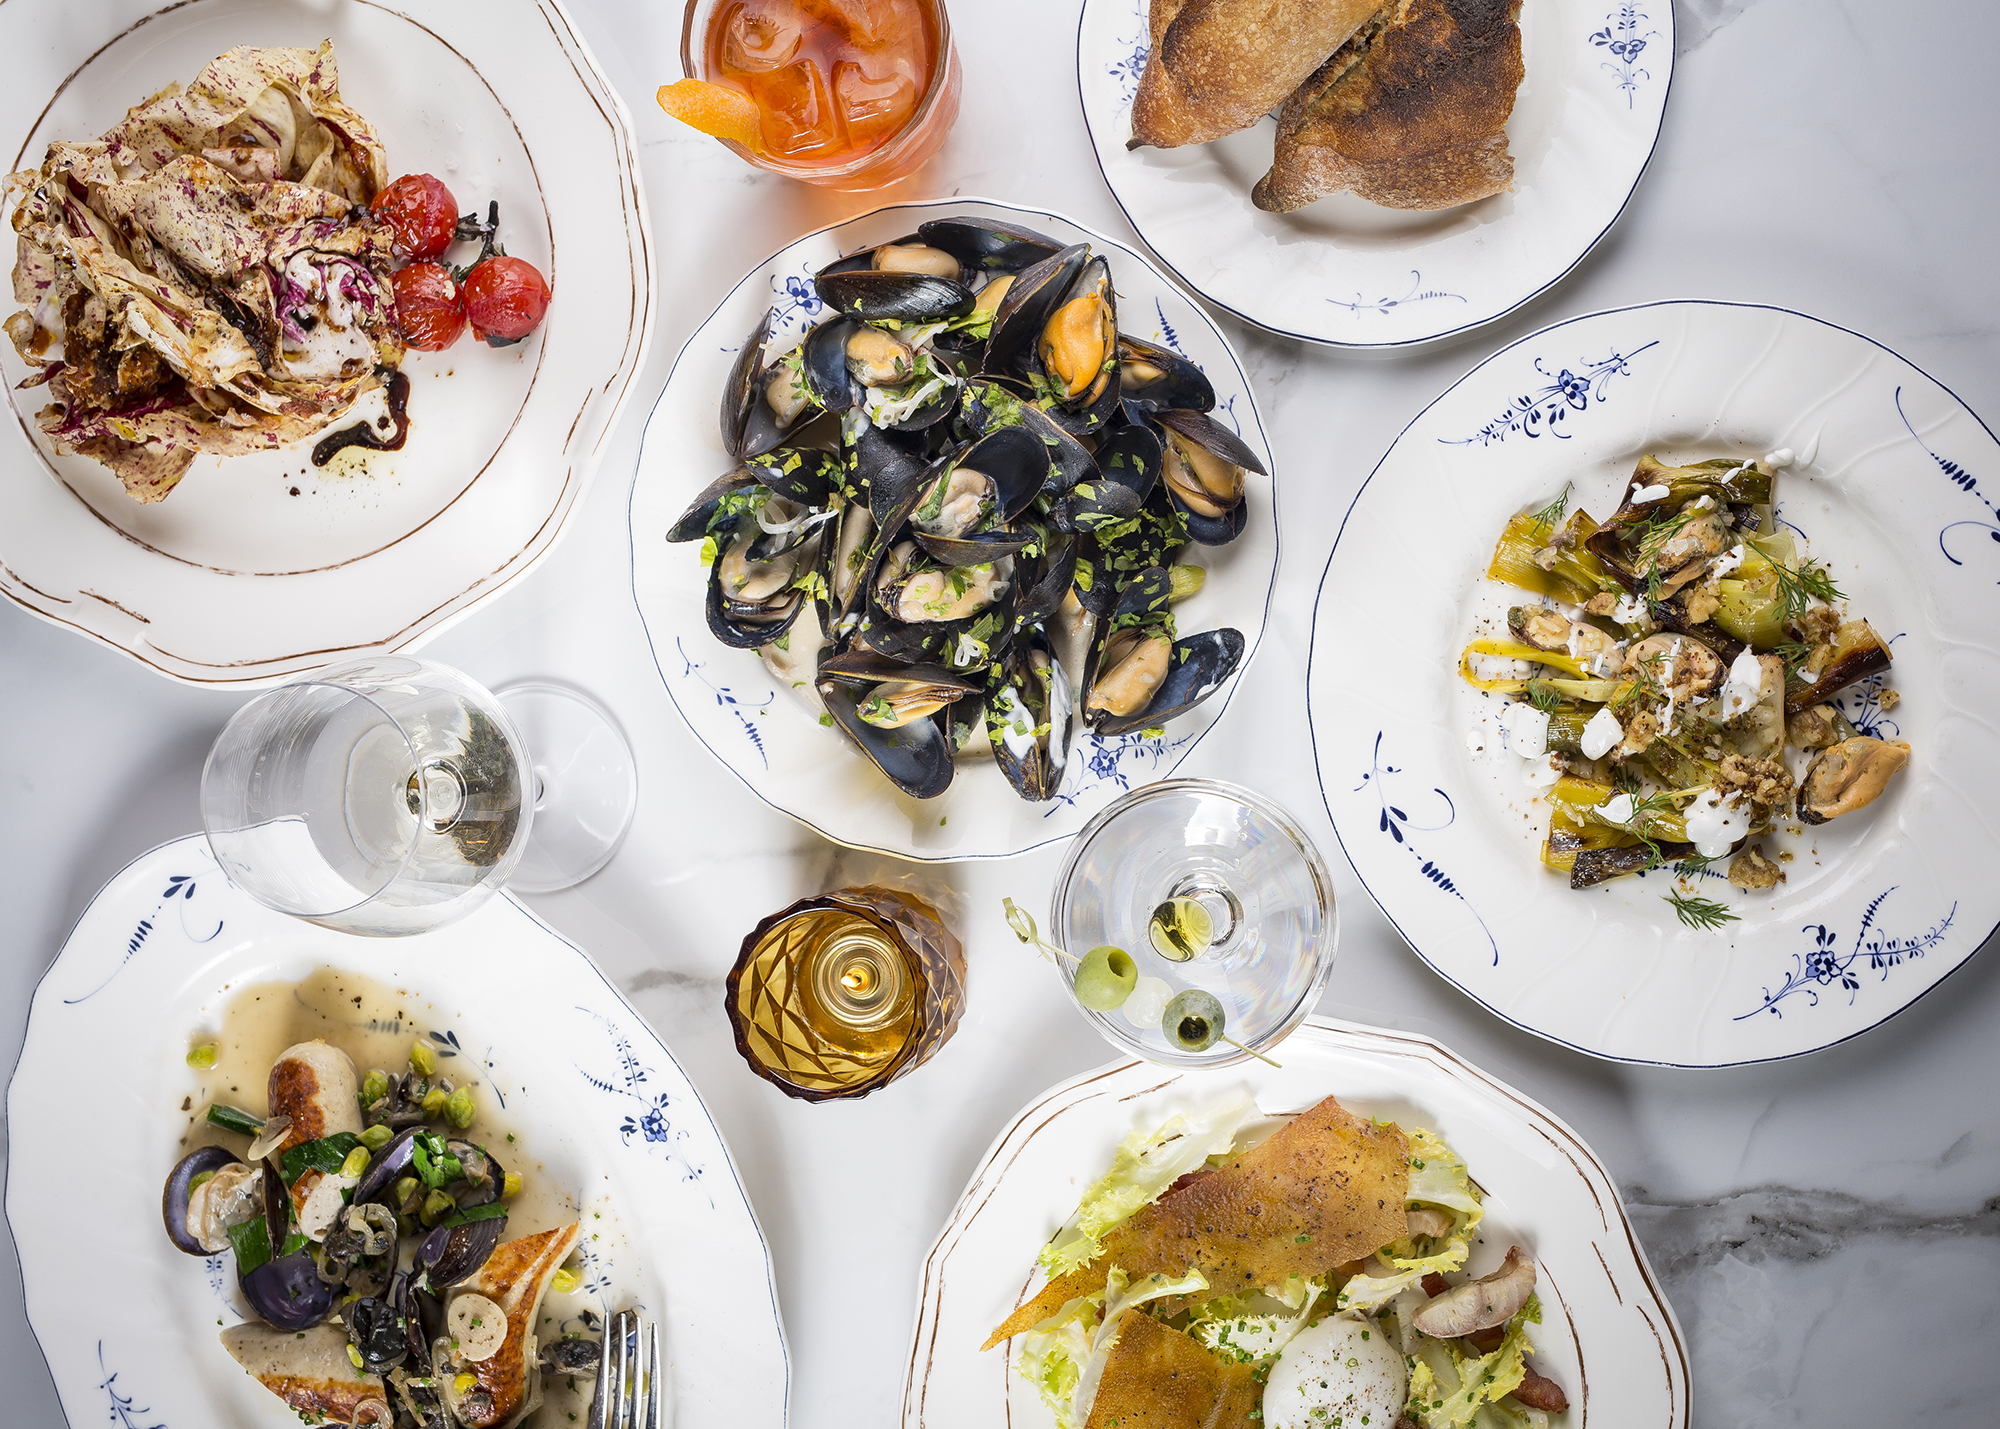 Publican Group's New French Restaurant Starts Serving These Seafood Dishes Tonight